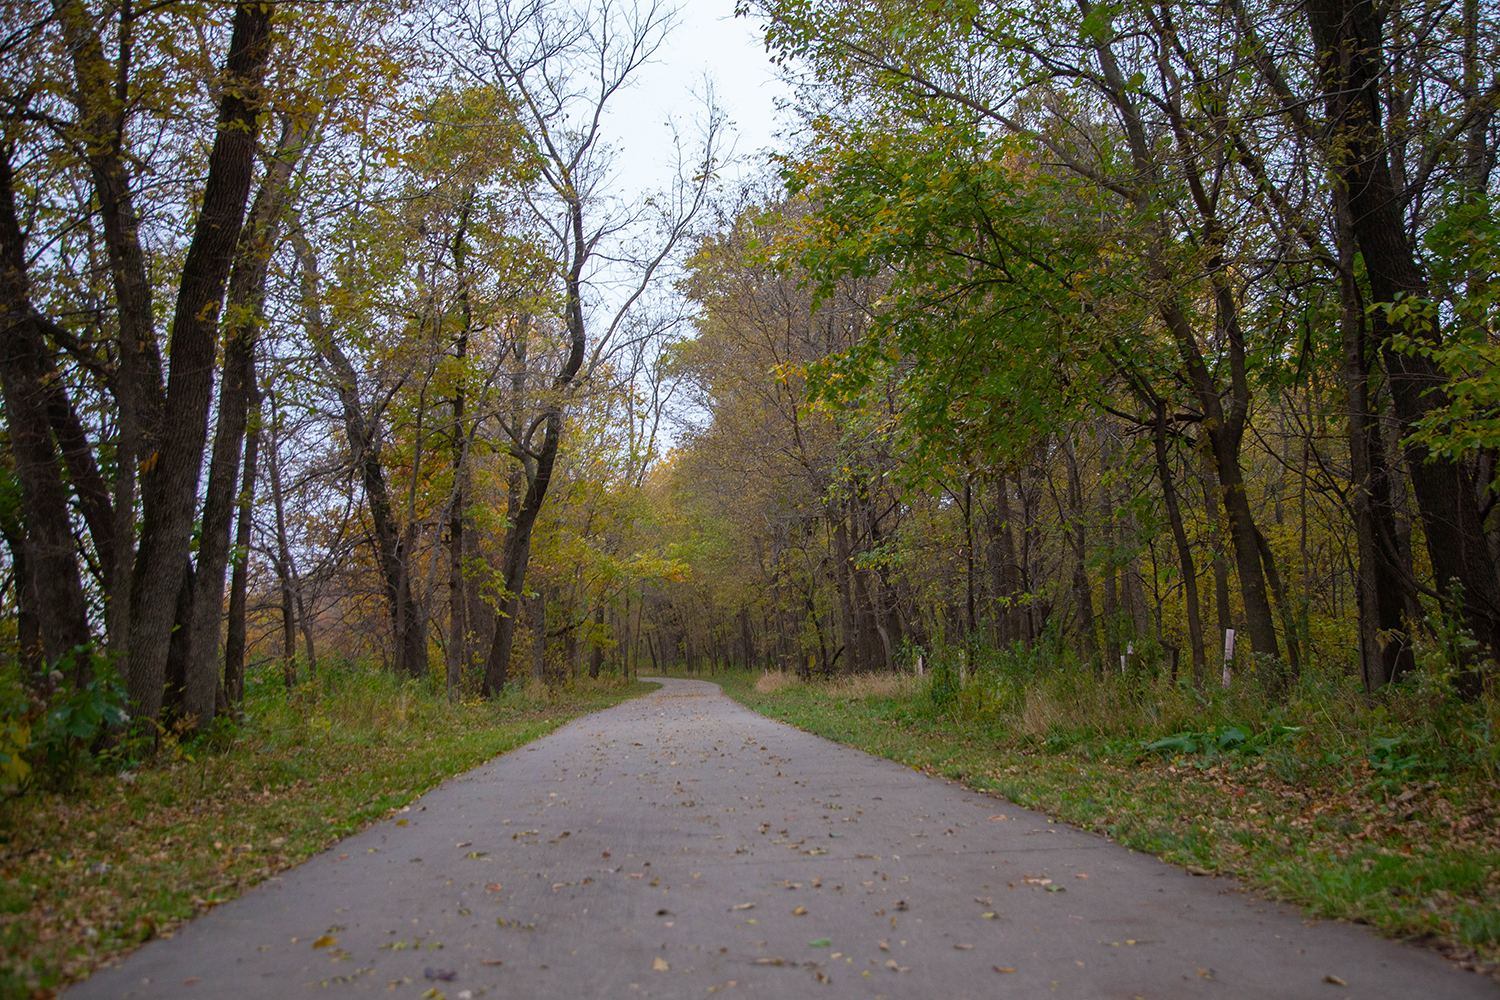 Thee Weidman Walk trail at Terry Trueblood Recreation Area is seen on Monday, Oct. 28, 2019. Iowa City has received a $200,00 resource enhancement and protection grant for ecological work at the park, which features hiking trails, boat rentals, and a playground.